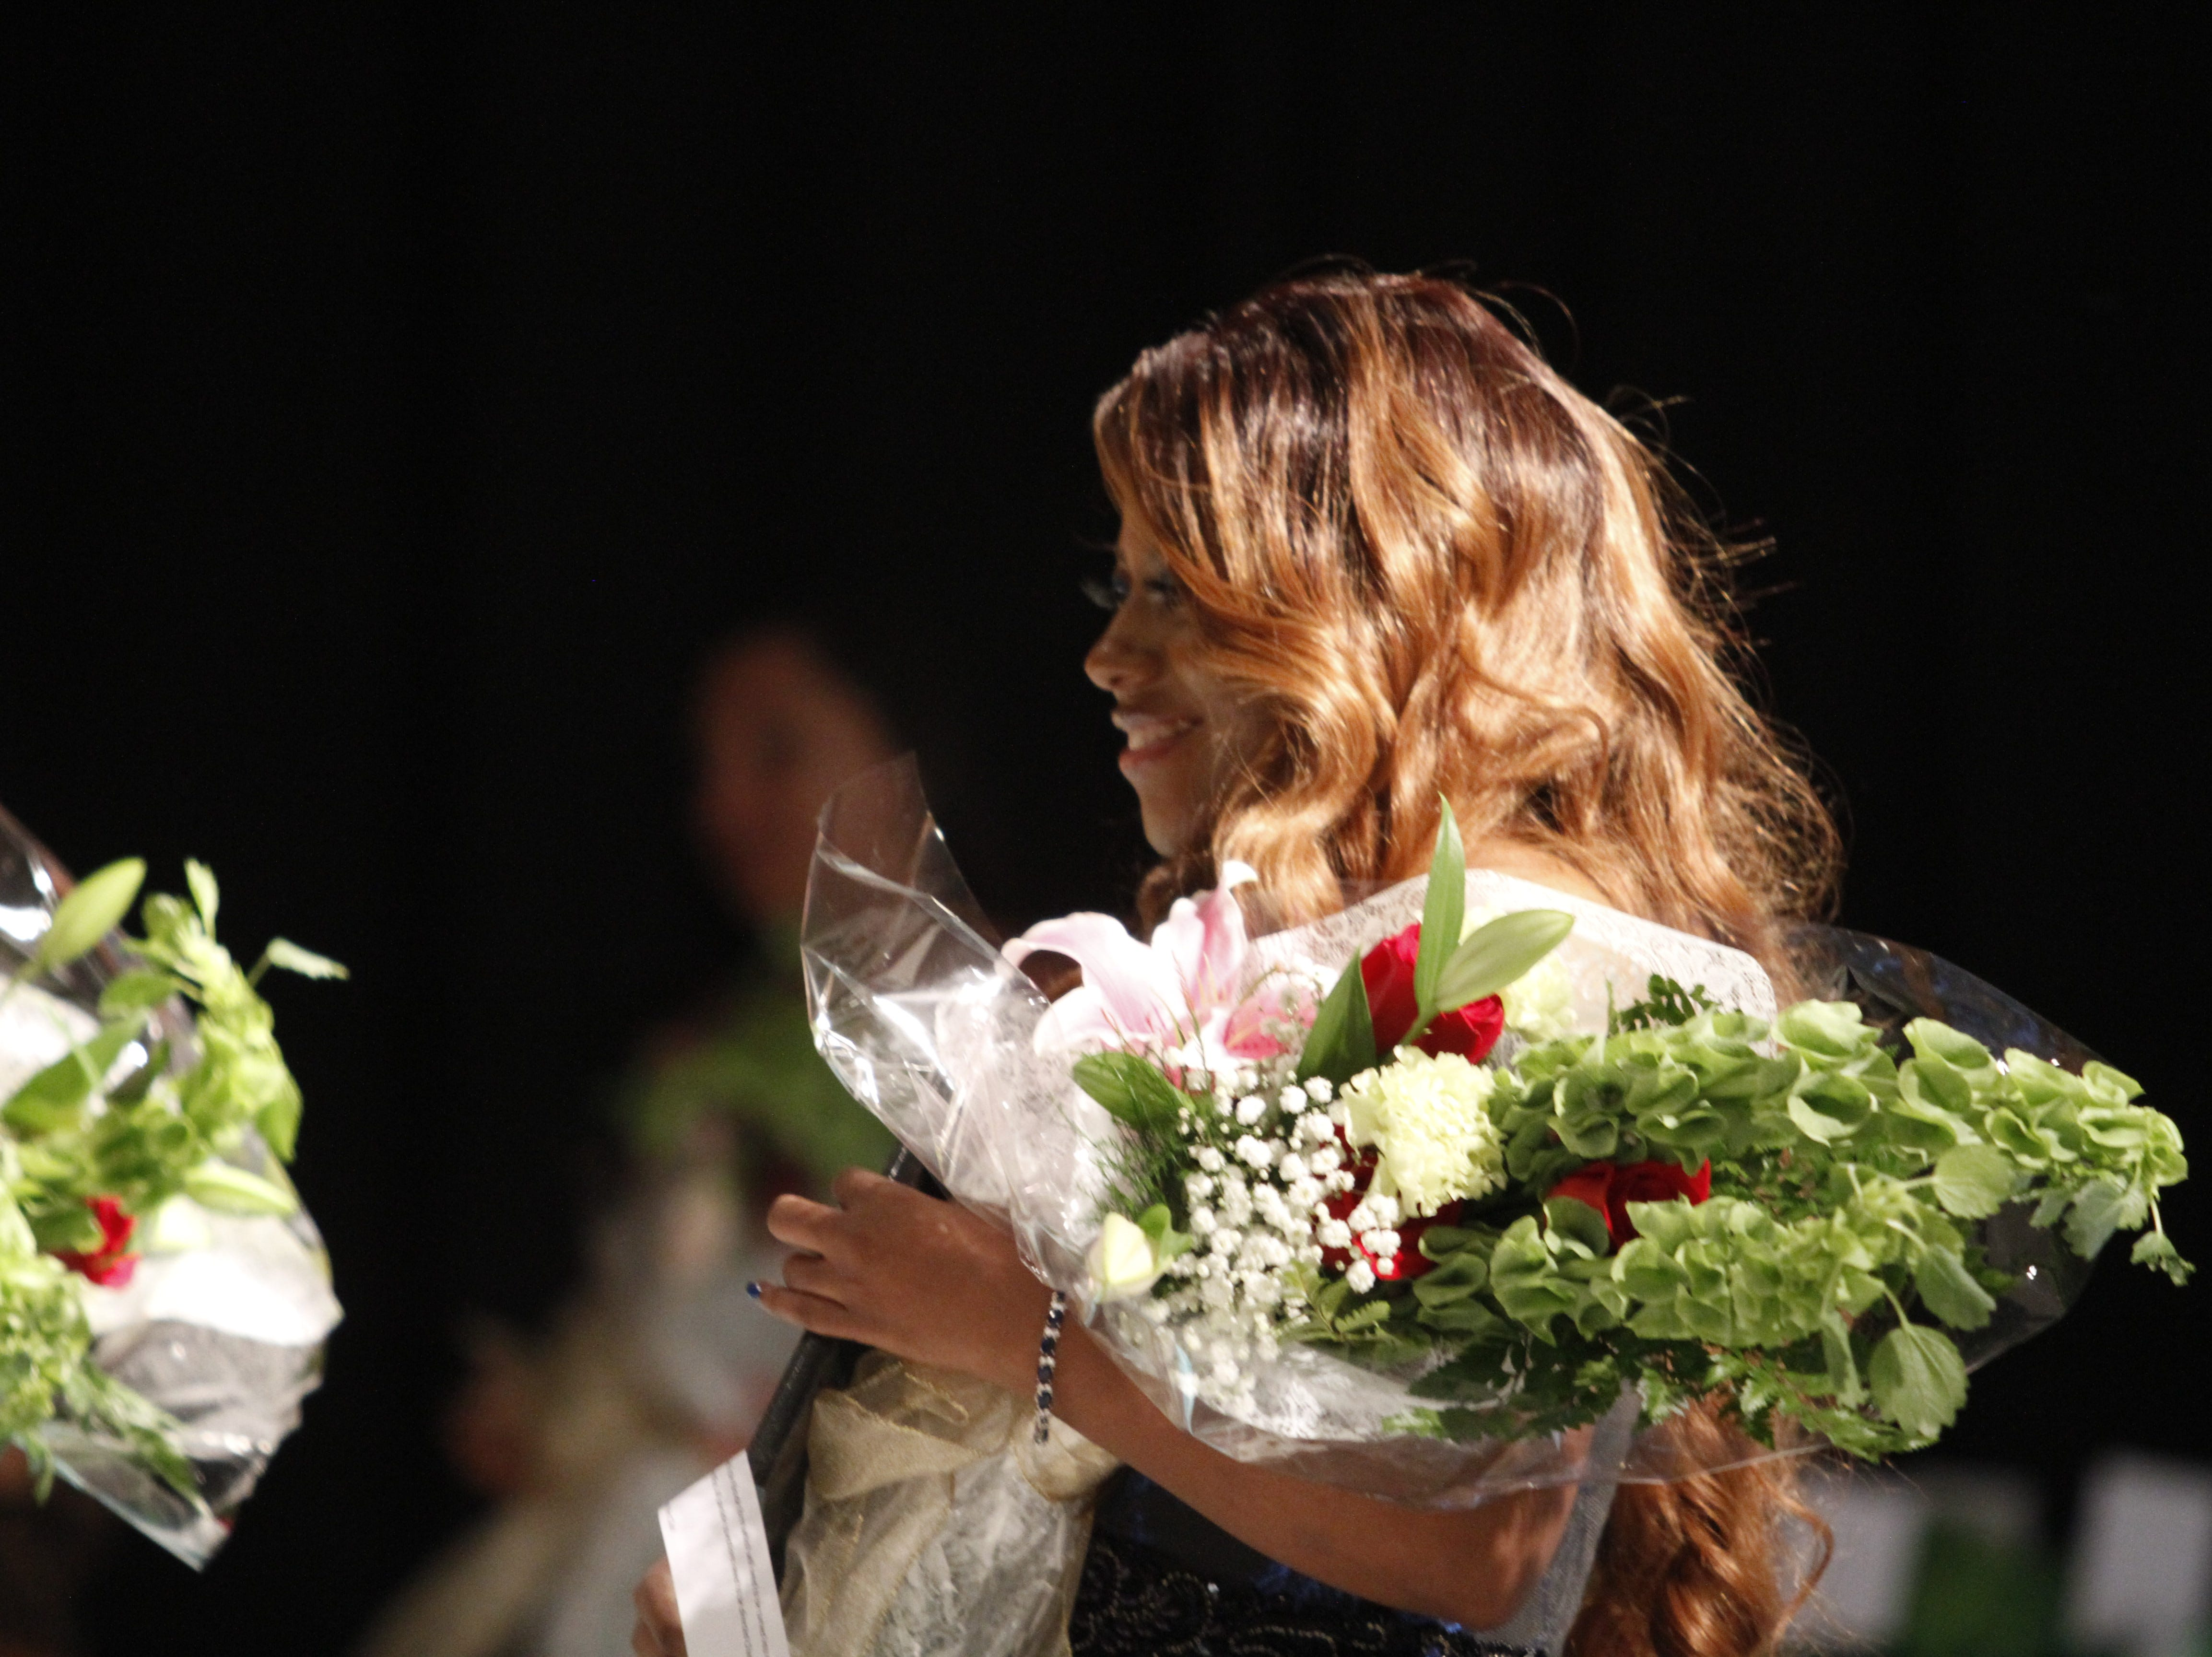 Shemika Askew, third runner-up in the 2019 Ms. Houston County competition on Saturday, March 9, 2019.